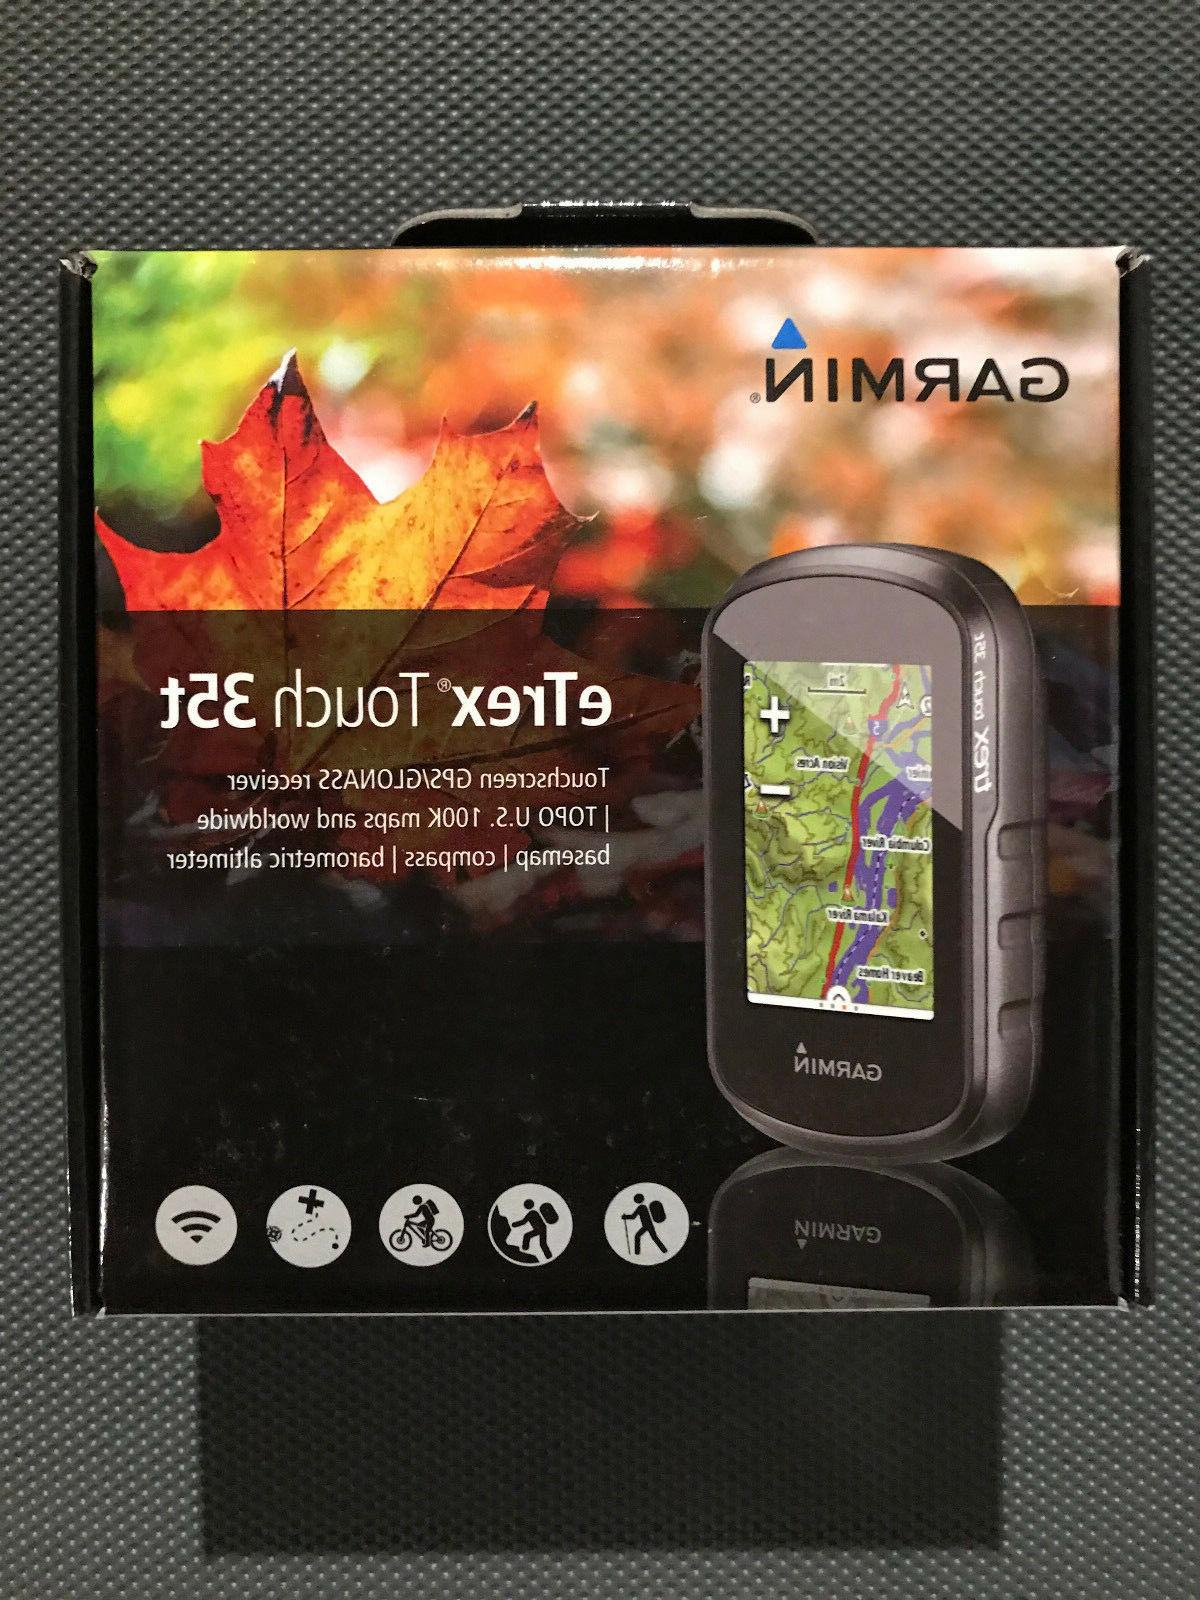 etrex touch 35t handheld gps